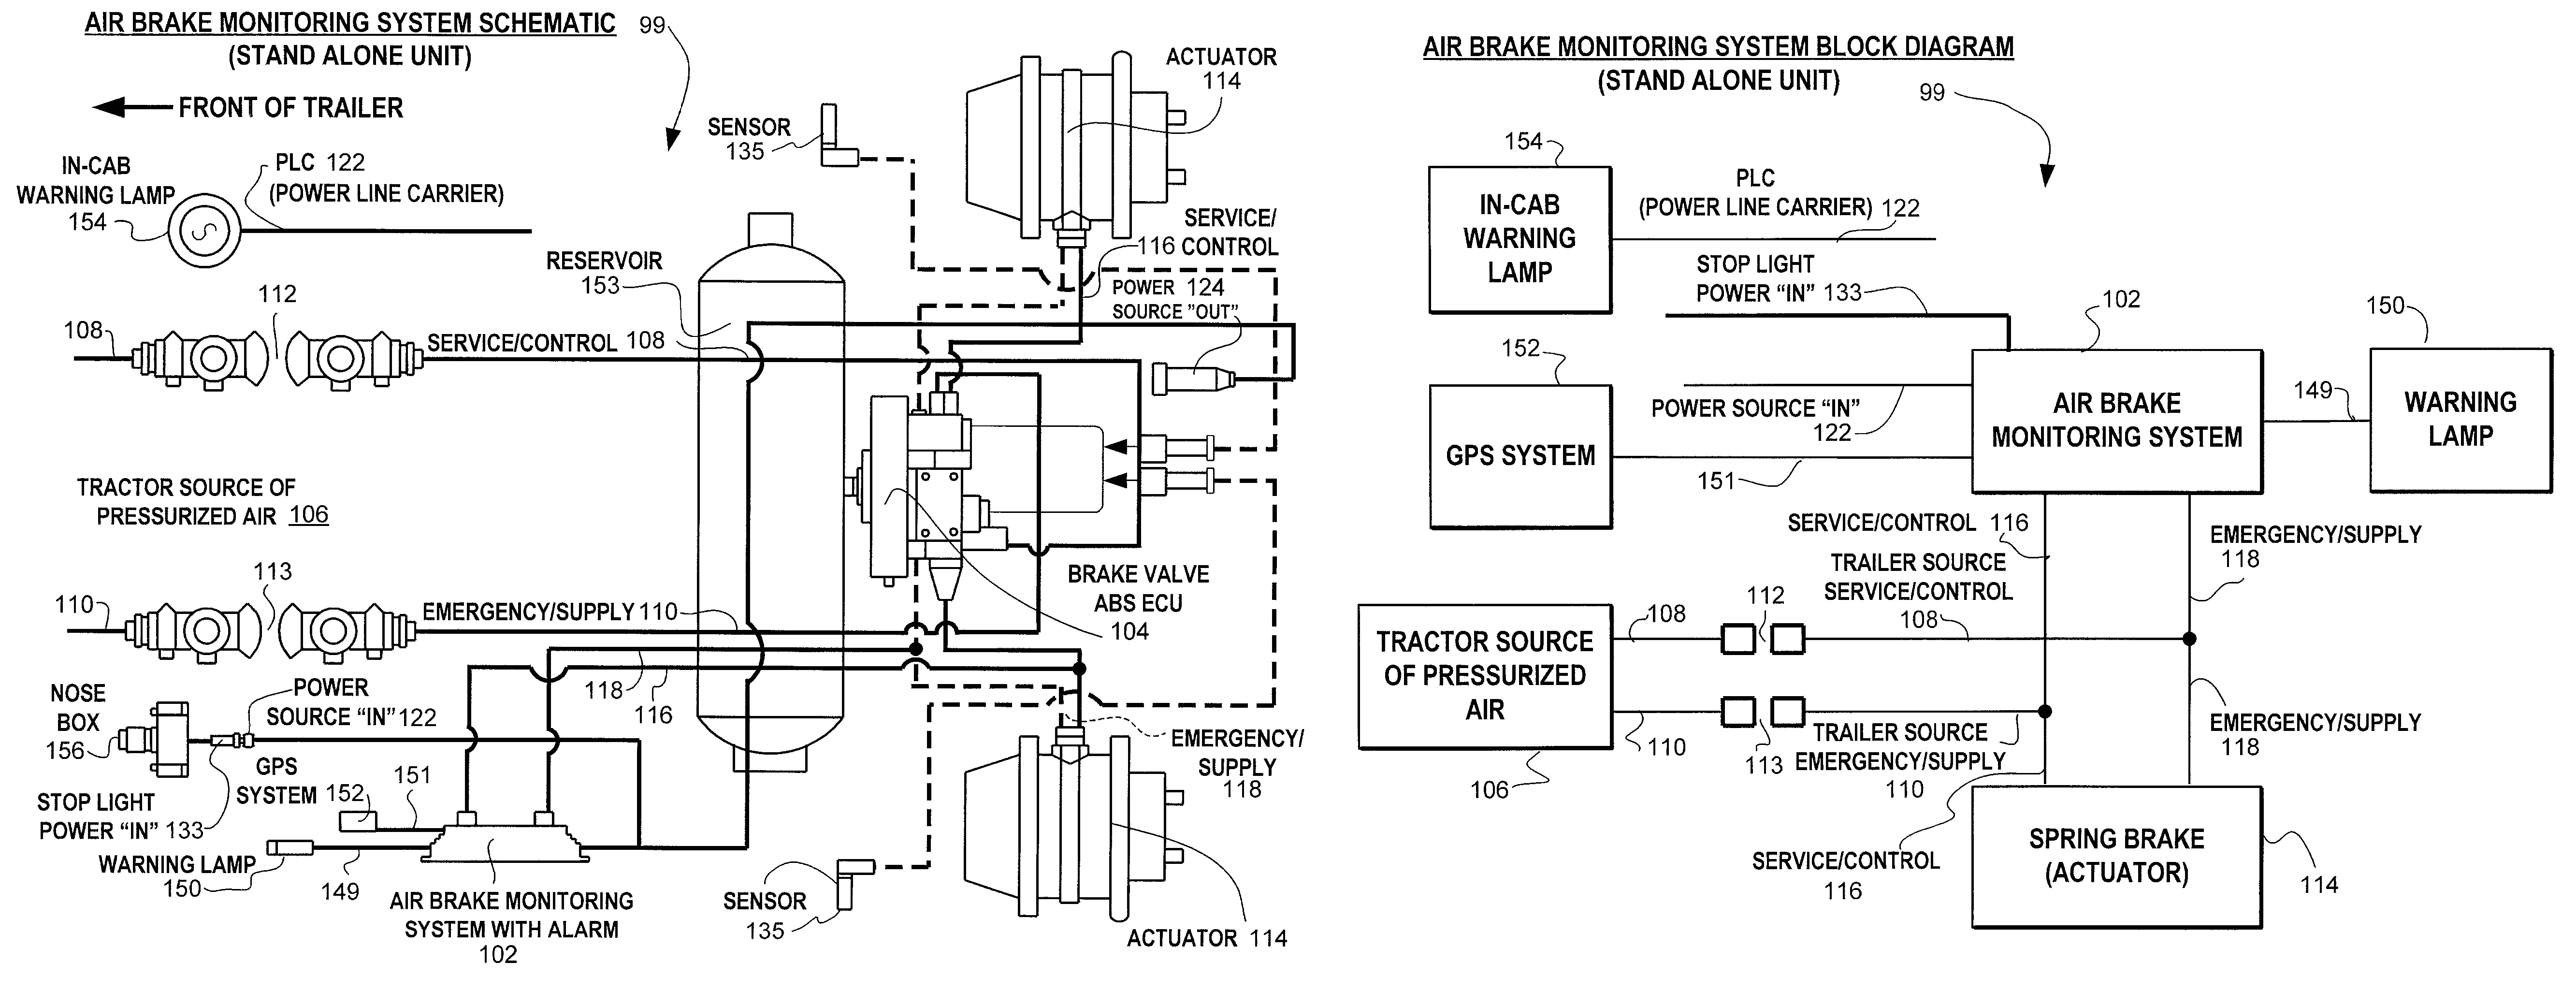 wabco abs wiring harness wiring diagram show freightliner abs wiring wiring diagram inside wabco abs wiring